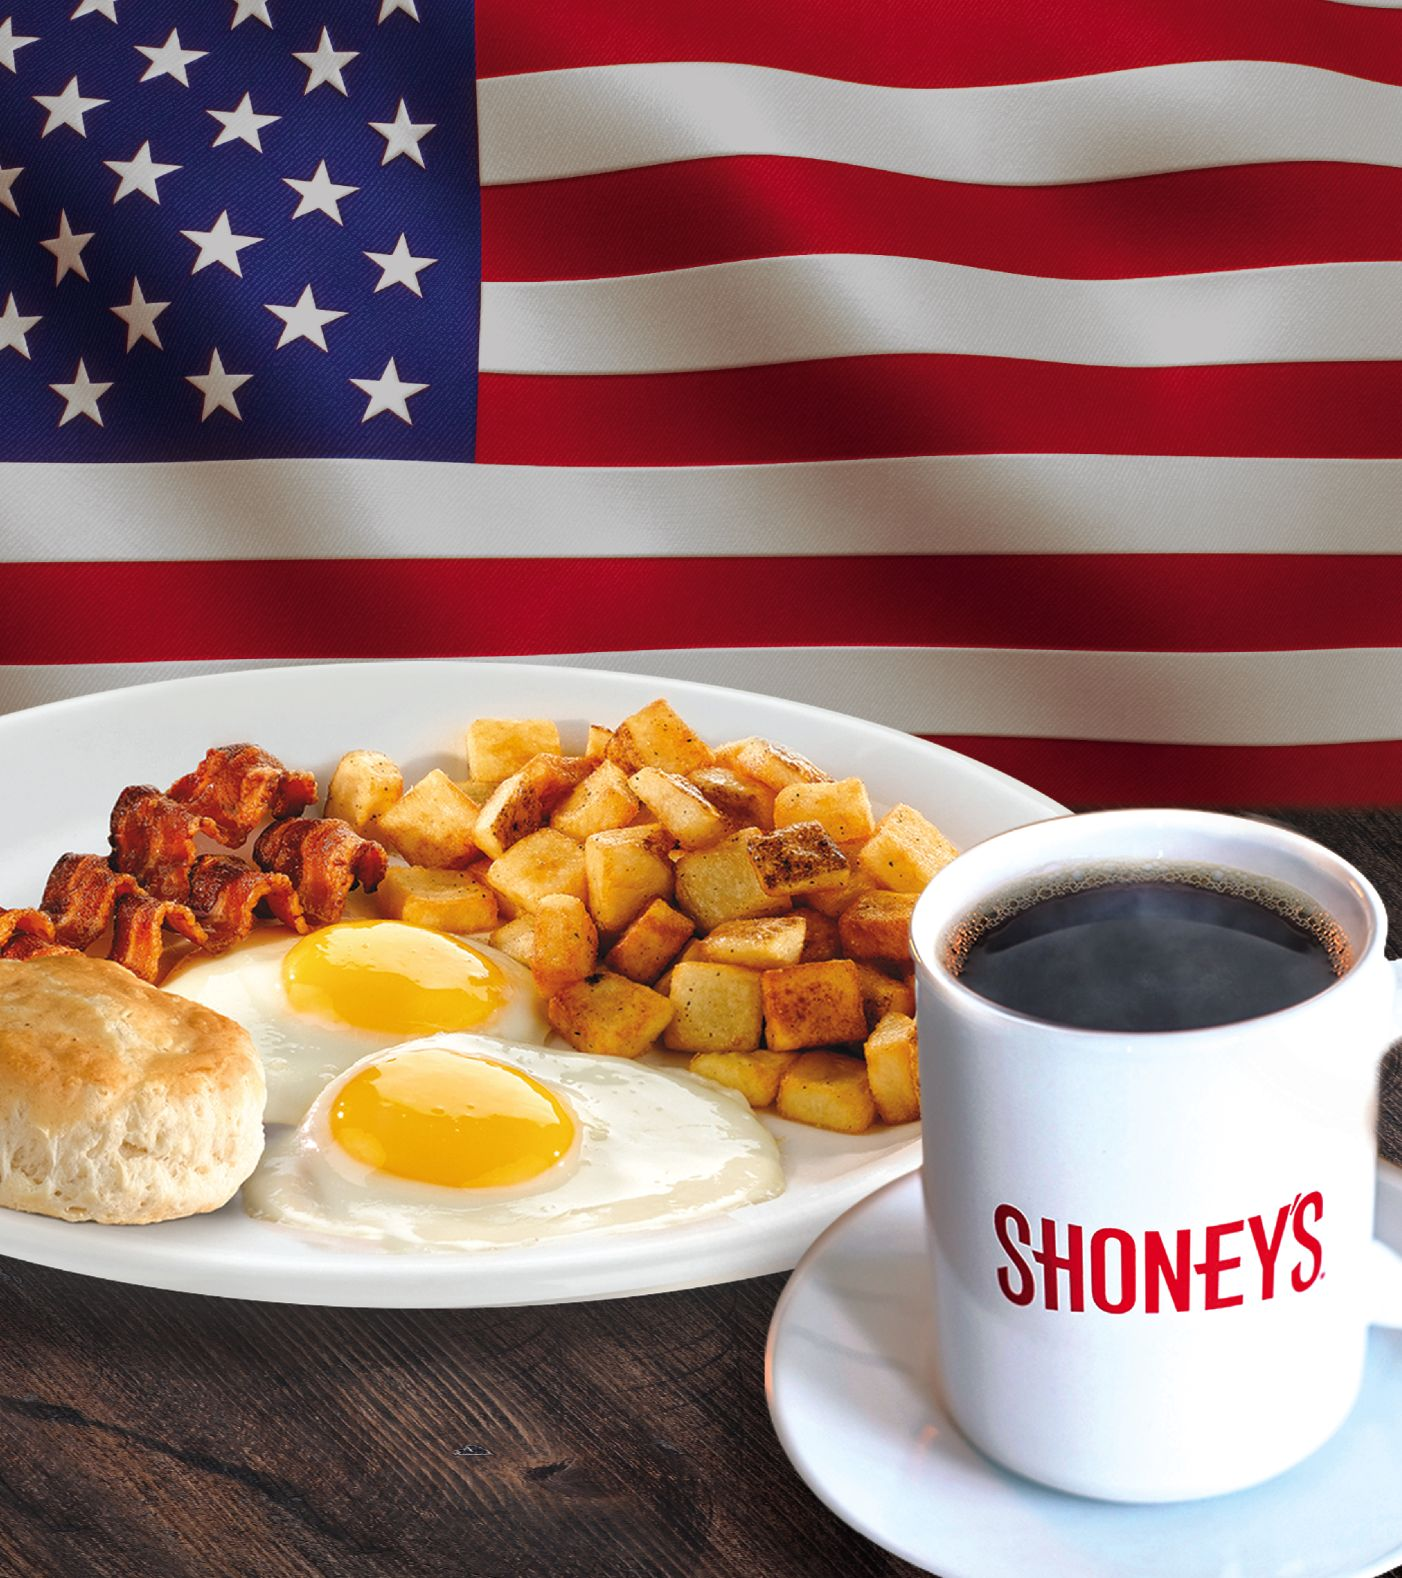 Shoney's Offers FREE All You Care To Eat, Freshly Prepared BREAKFAST BAR for Military on Veterans Day When the Heroes' Holiday is Being Observed - Monday, November 11, 2019